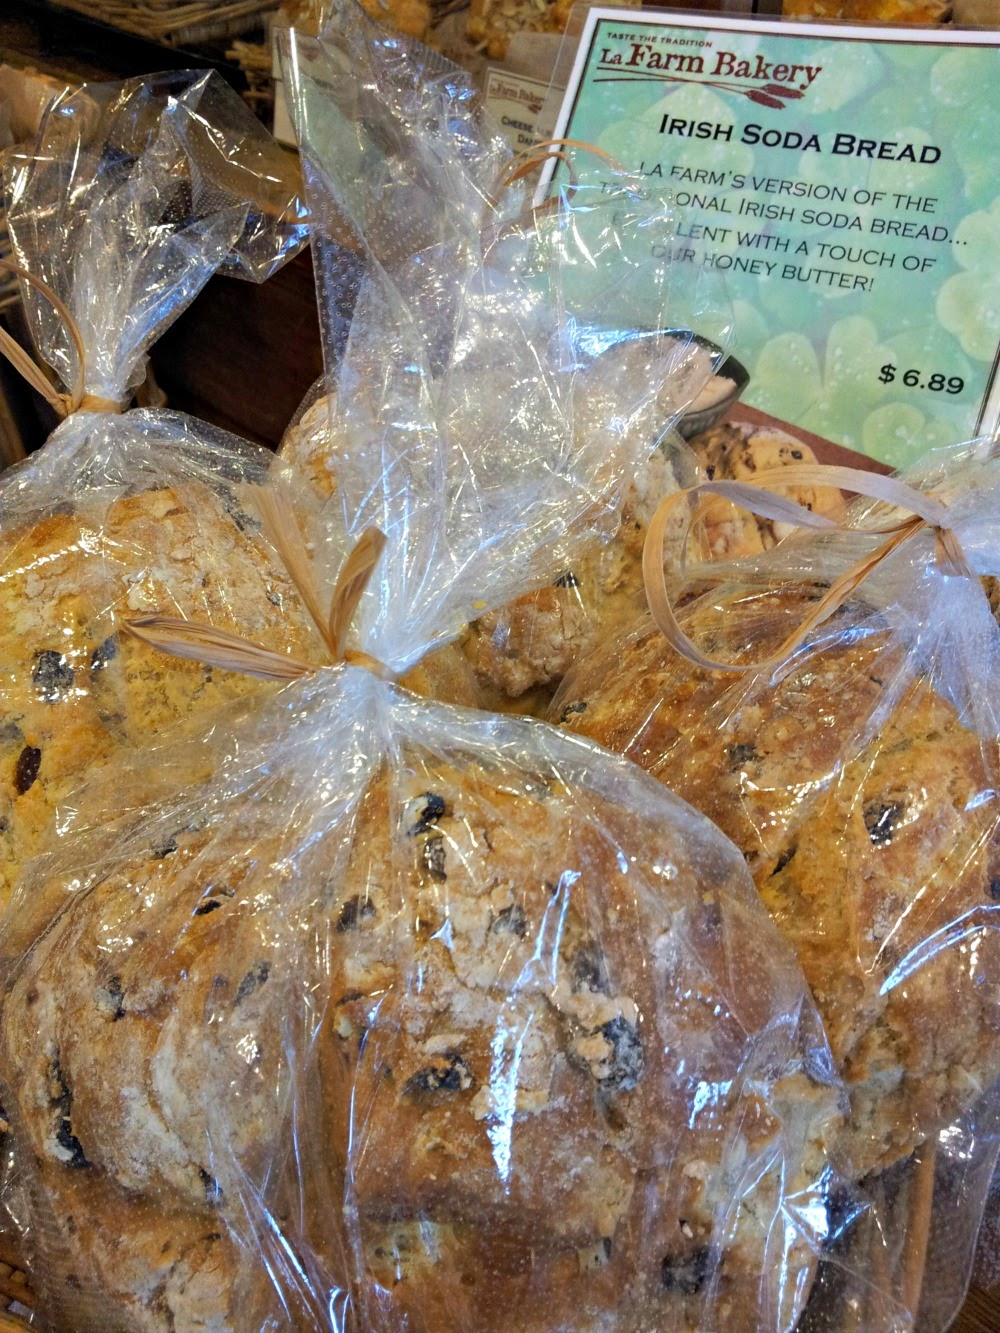 Irish Soda Bread sold at LaFarm Bakery in Cary, N.C.